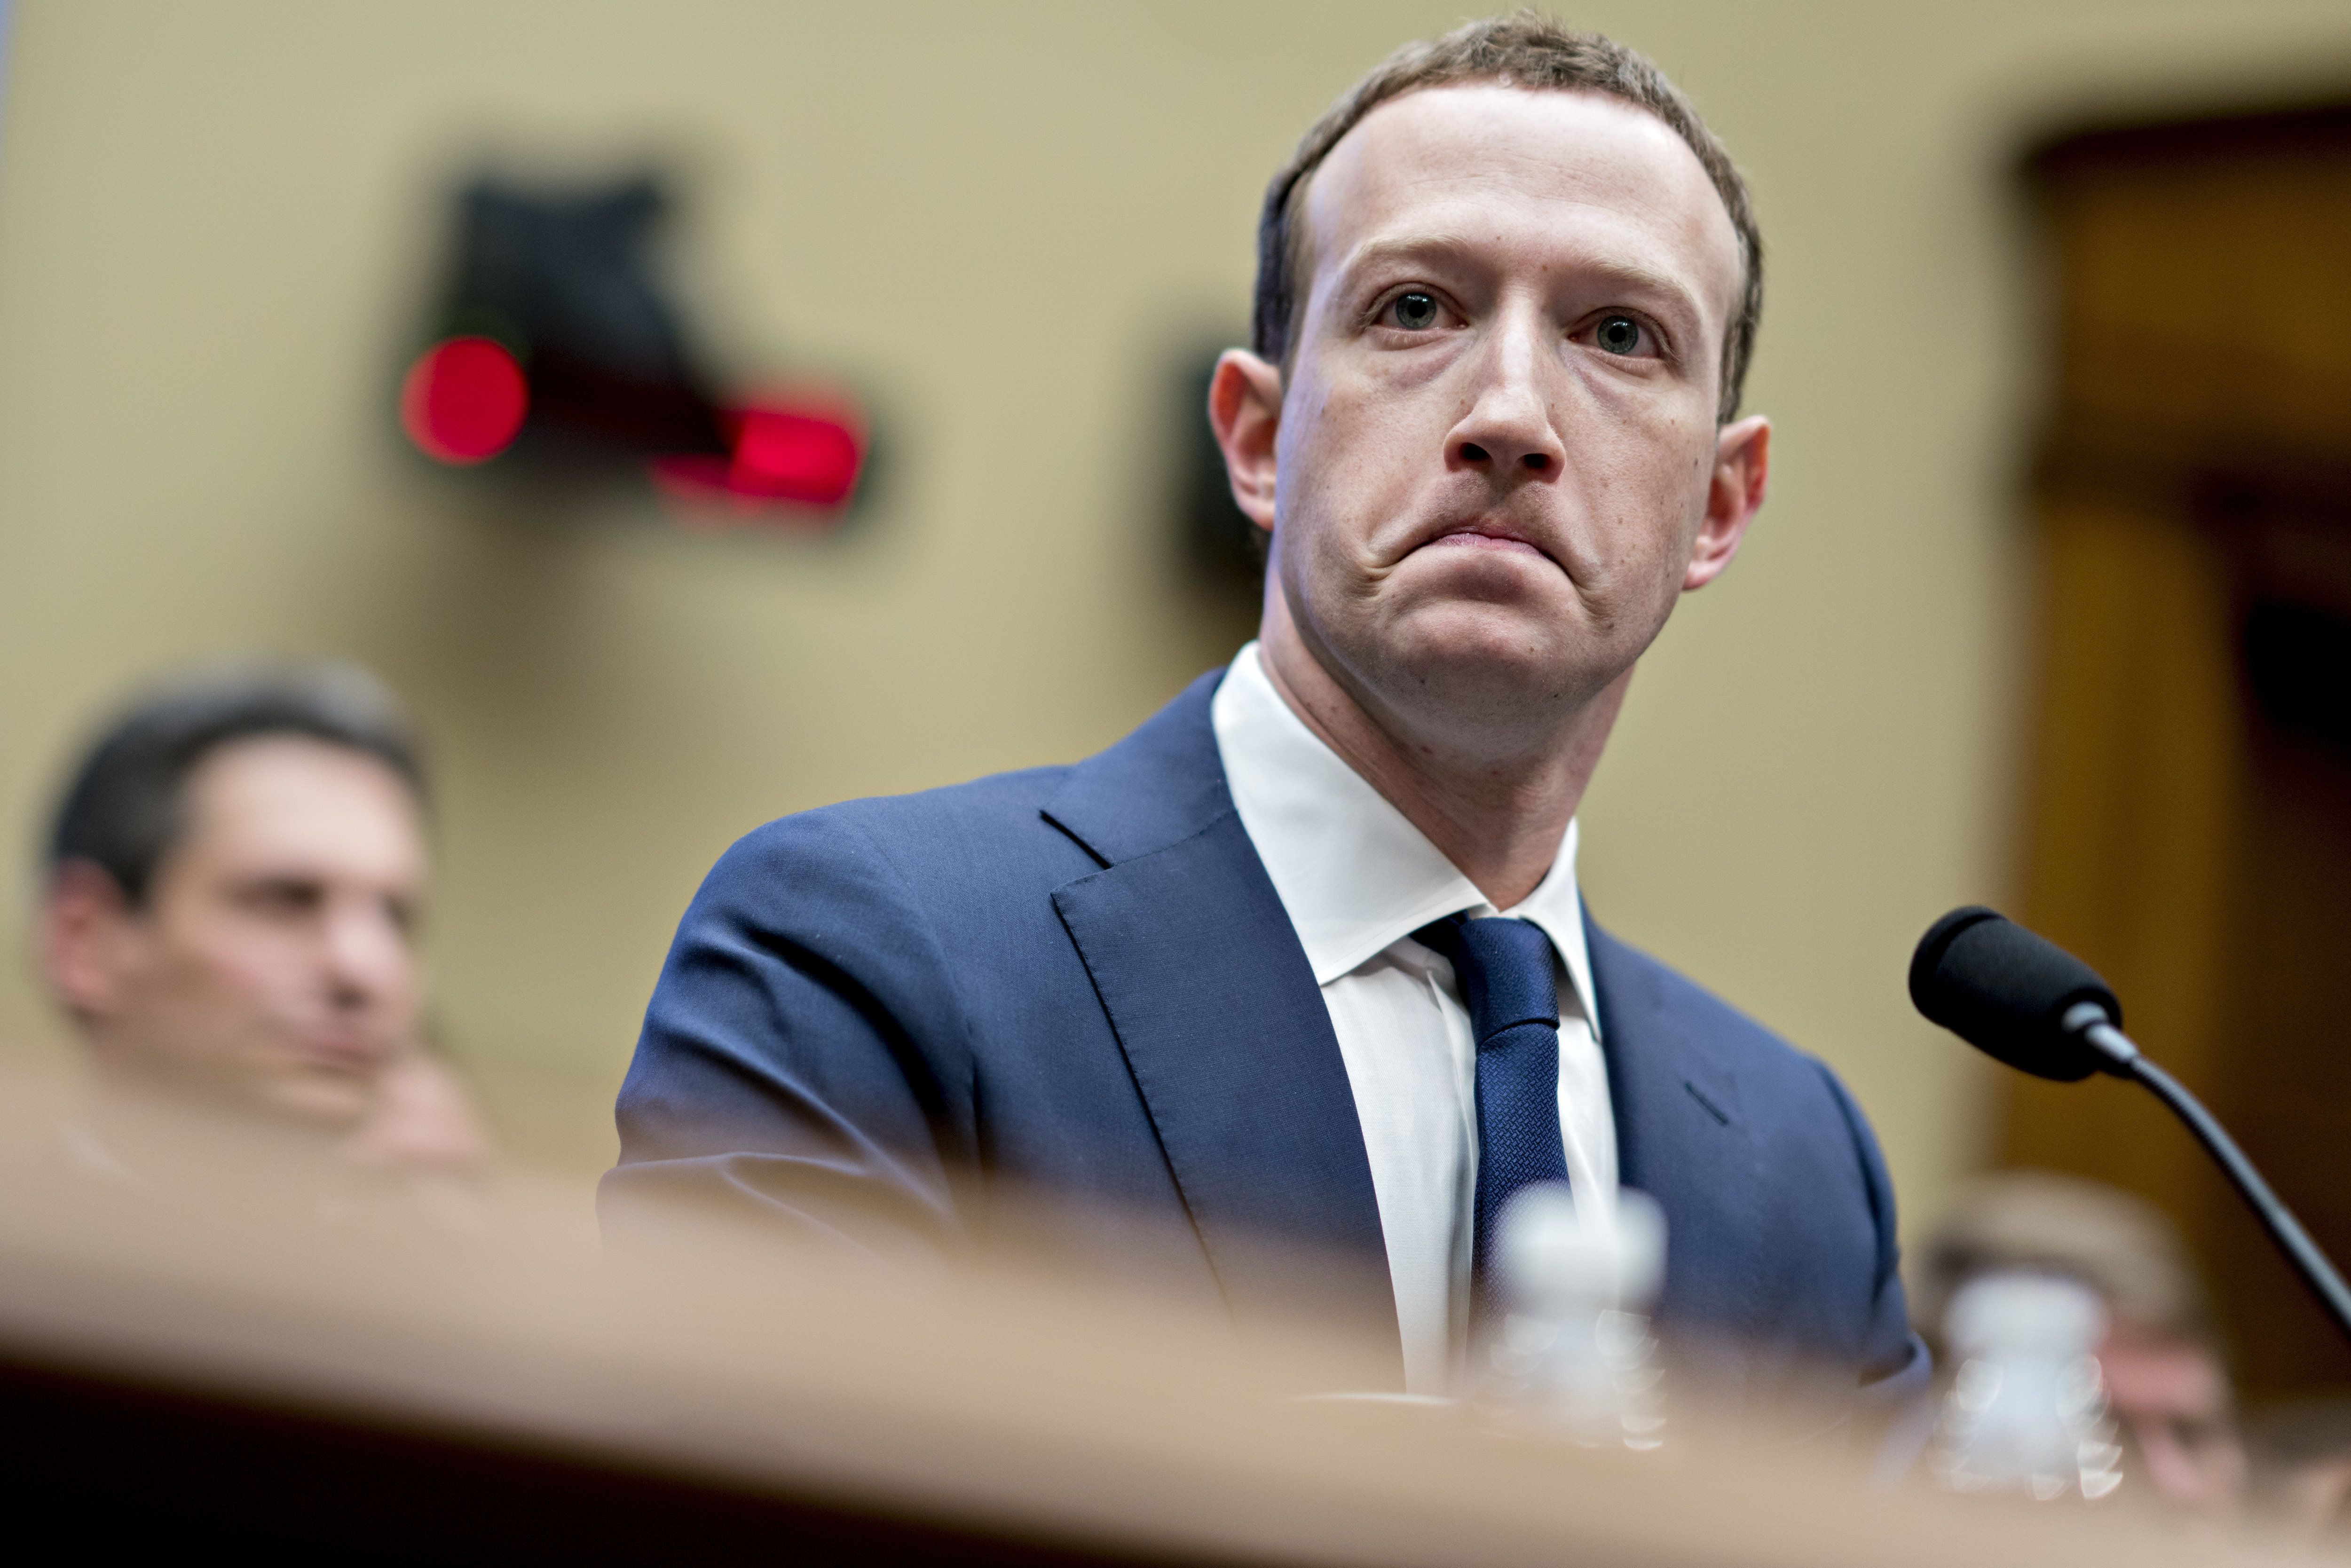 Bloomberg Best of the Year 2018: Mark Zuckerberg, chief executive officer and founder of Facebook Inc., listens during a House Energy and Commerce Committee hearing in Washington, D.C., U.S., on Wednesday, April 11, 2018. Photographer: Andrew Harrer/Bloomberg via Getty Images